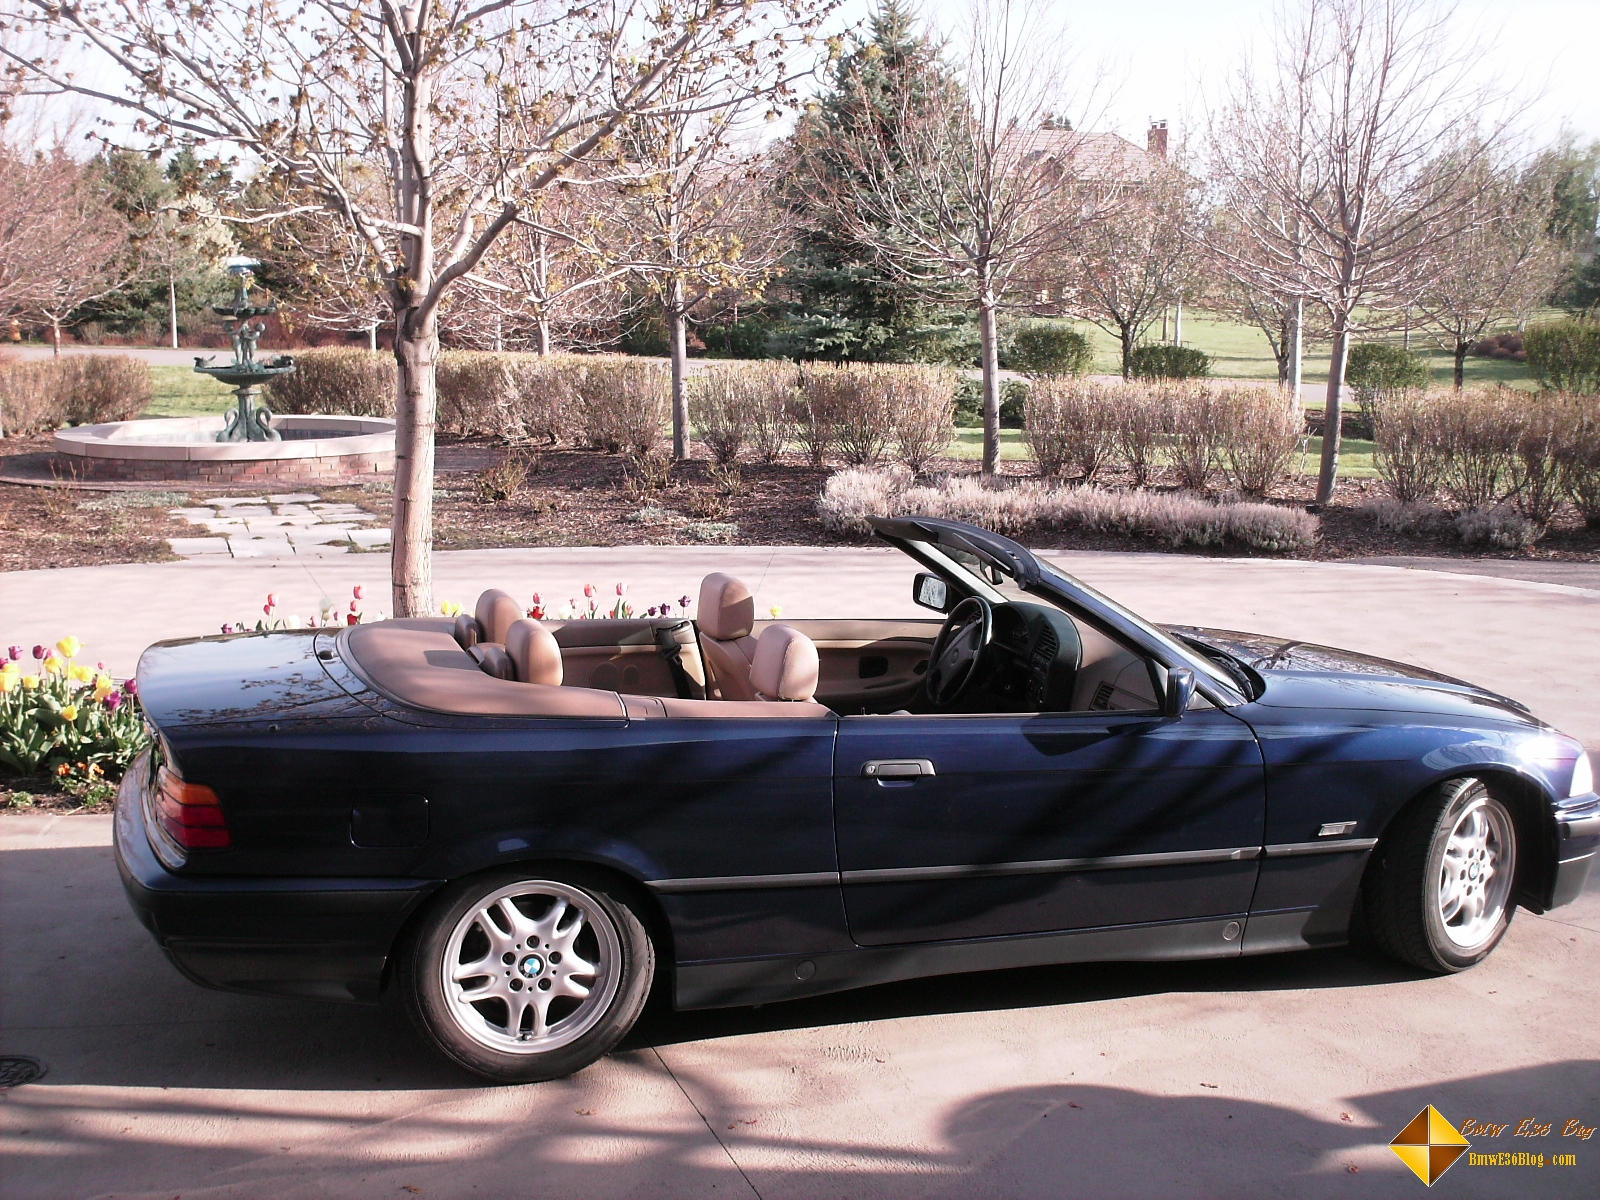 photos bmw e36 convertible photo shoot bmw e36 convertible photo shoot 07 bmw e36 image viewer. Black Bedroom Furniture Sets. Home Design Ideas